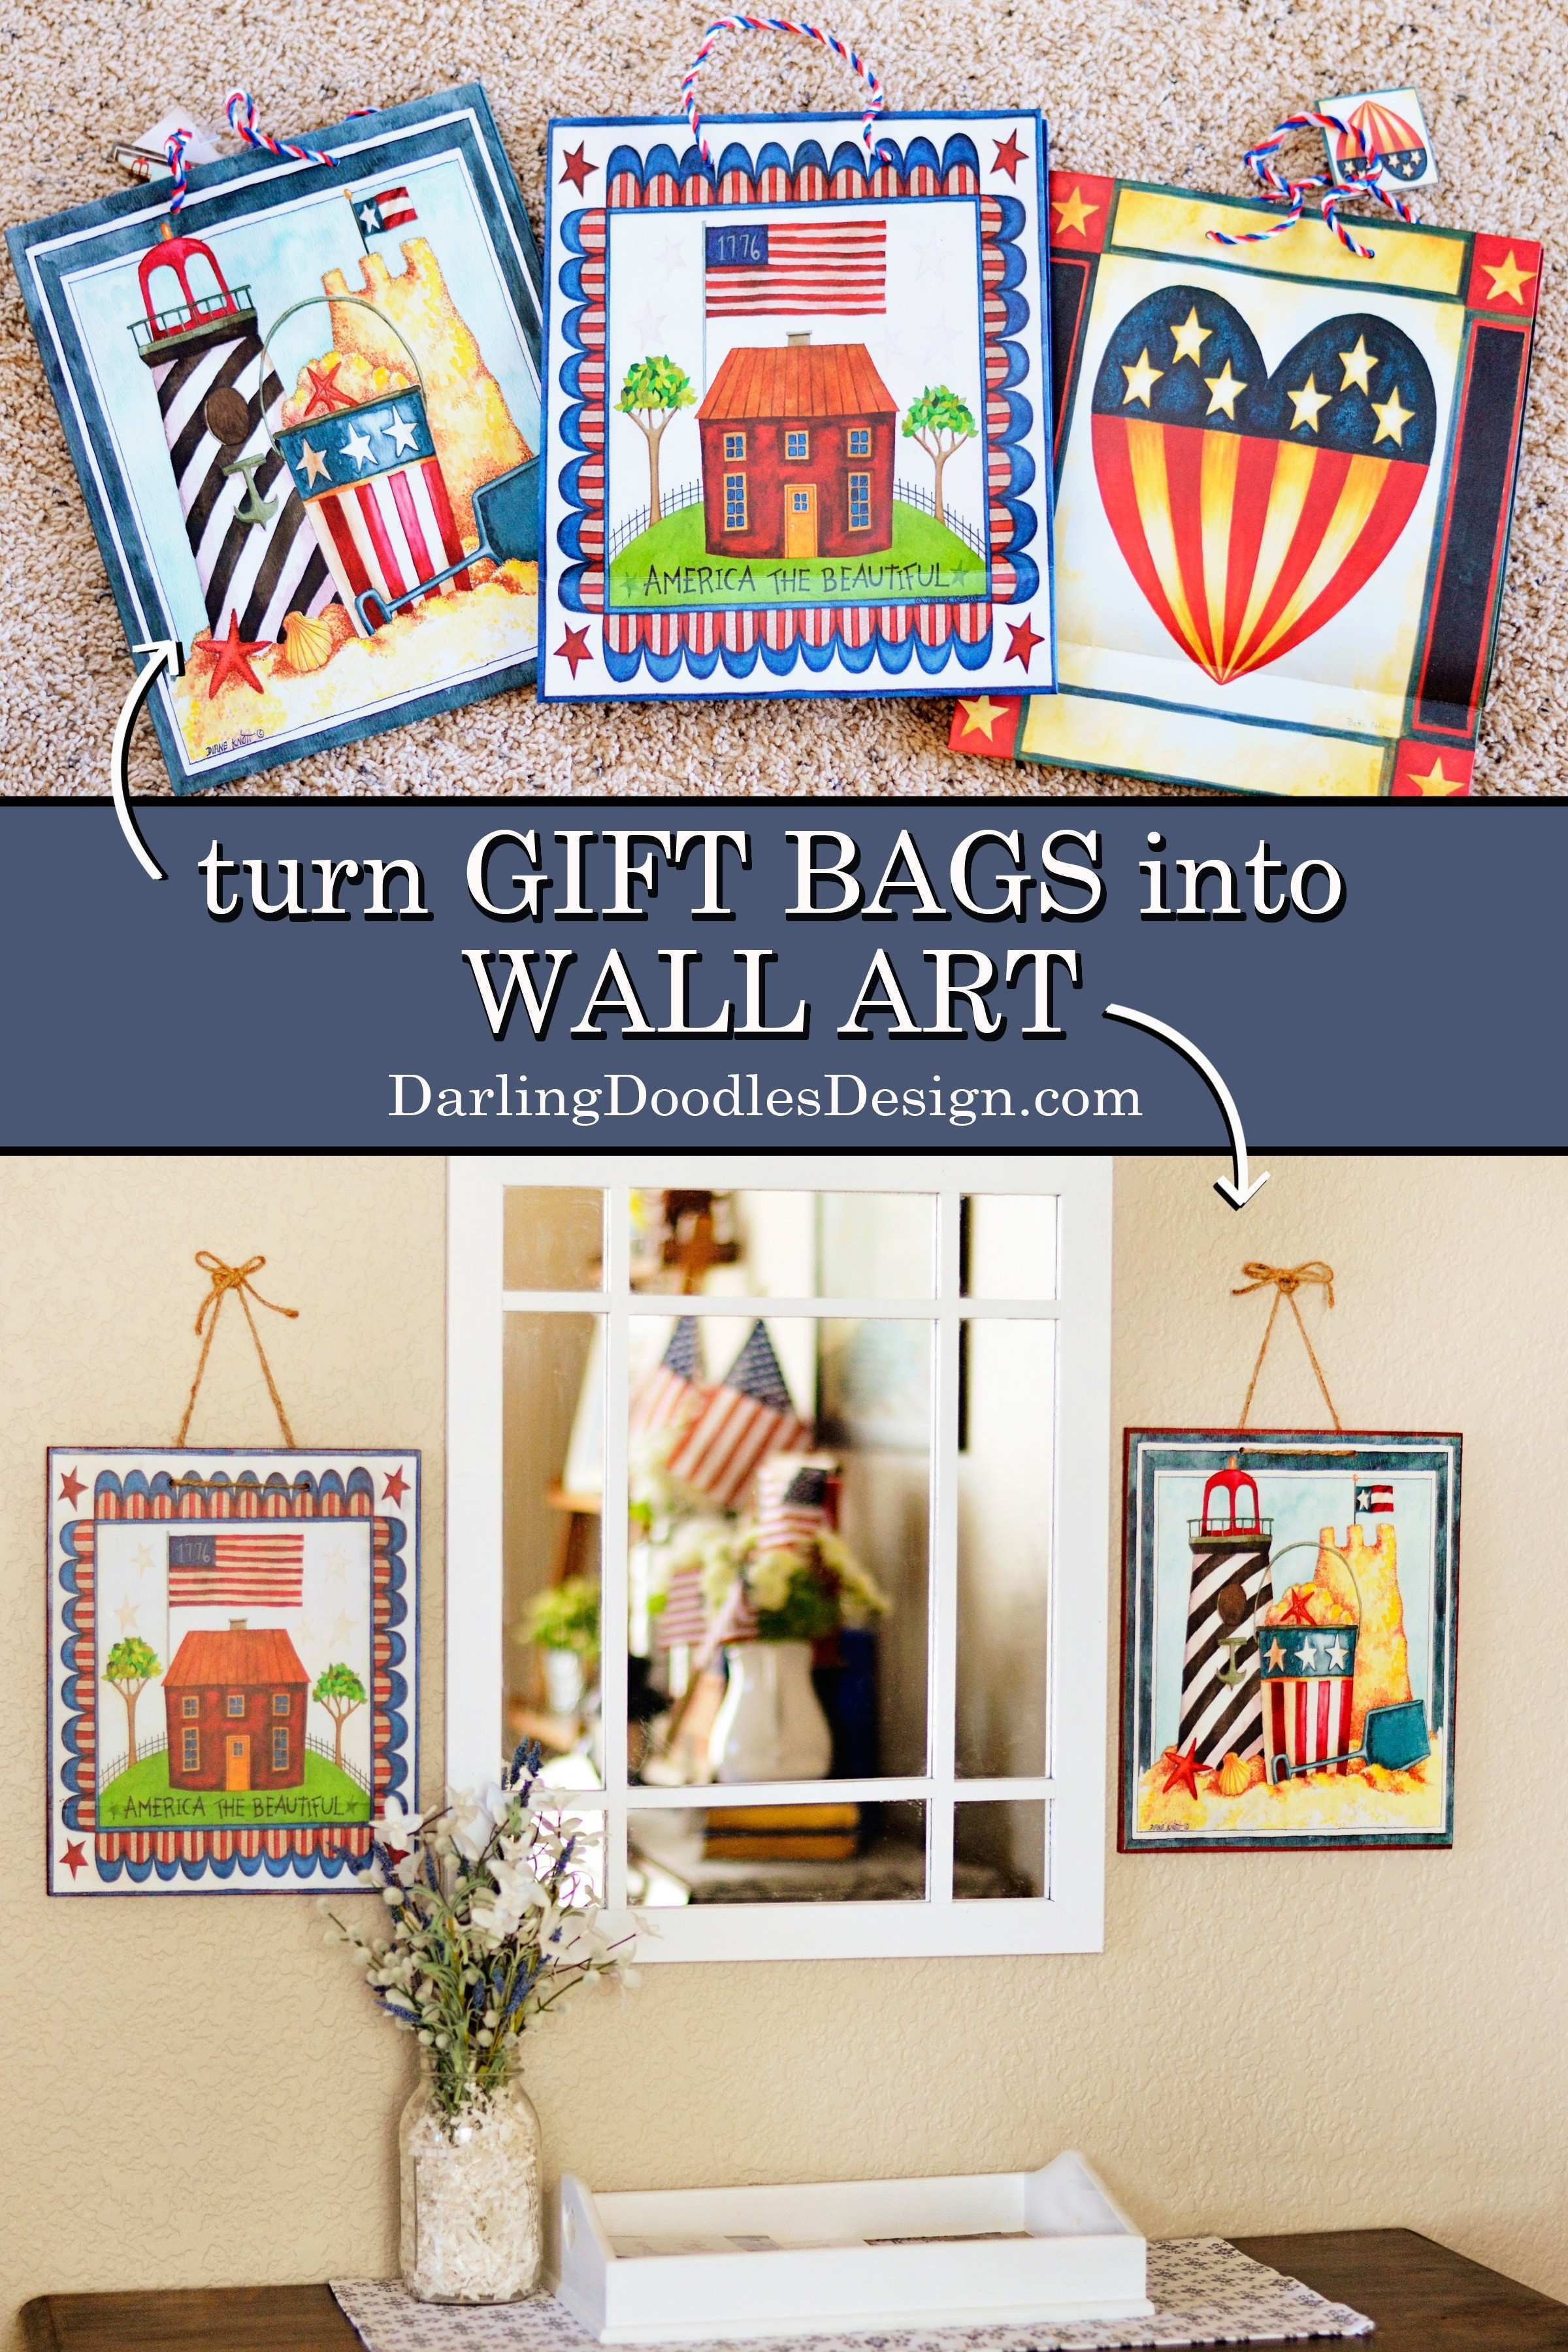 DIY Wall Art From Gift Bags Darling Doodles